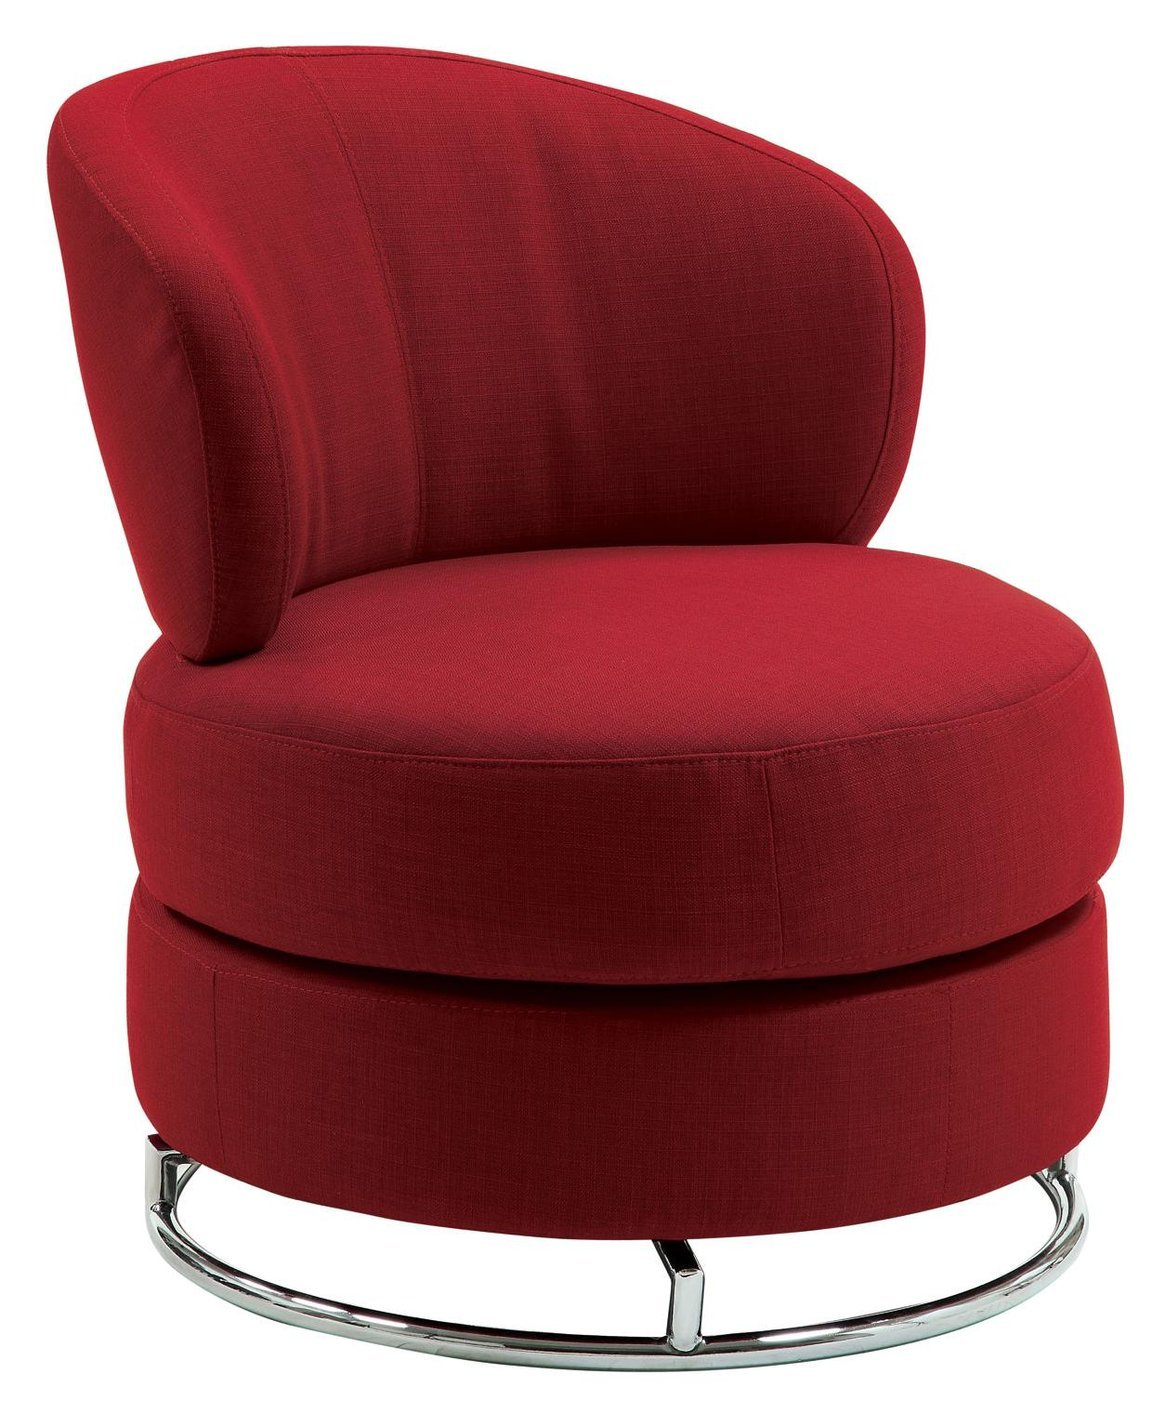 Coaster 902104 Red Fabric Swivel Chair